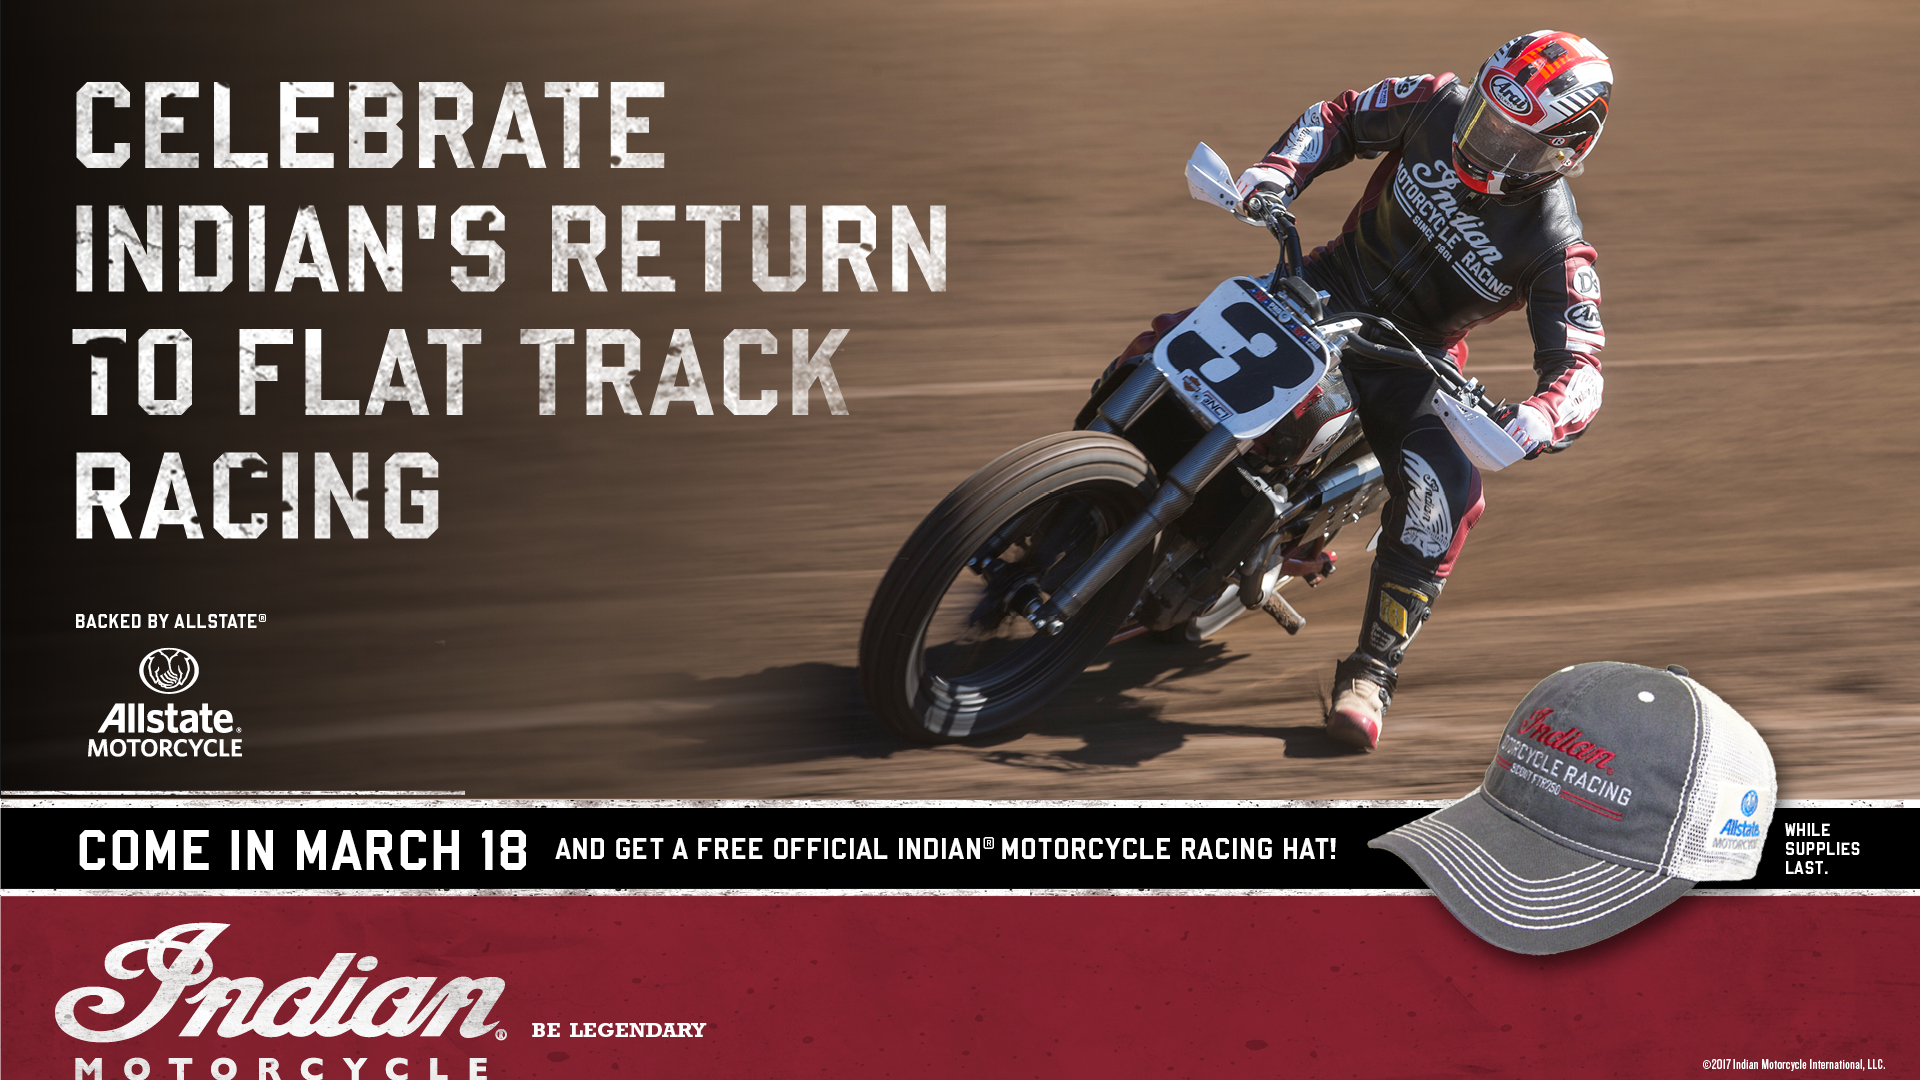 Come in on March 18 and get a free official Indian Motorcycle Racing Hat.